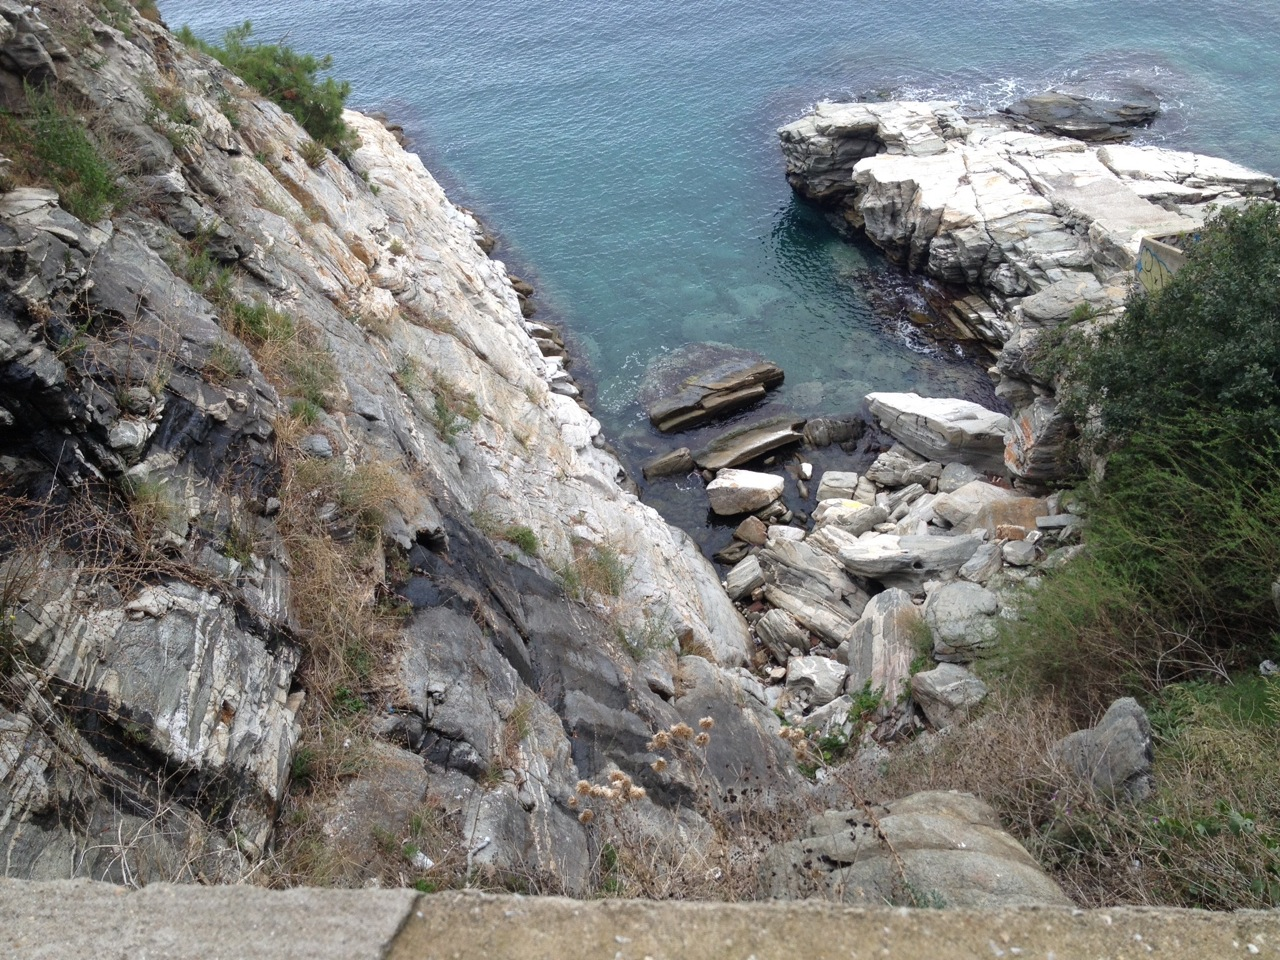 View from the path